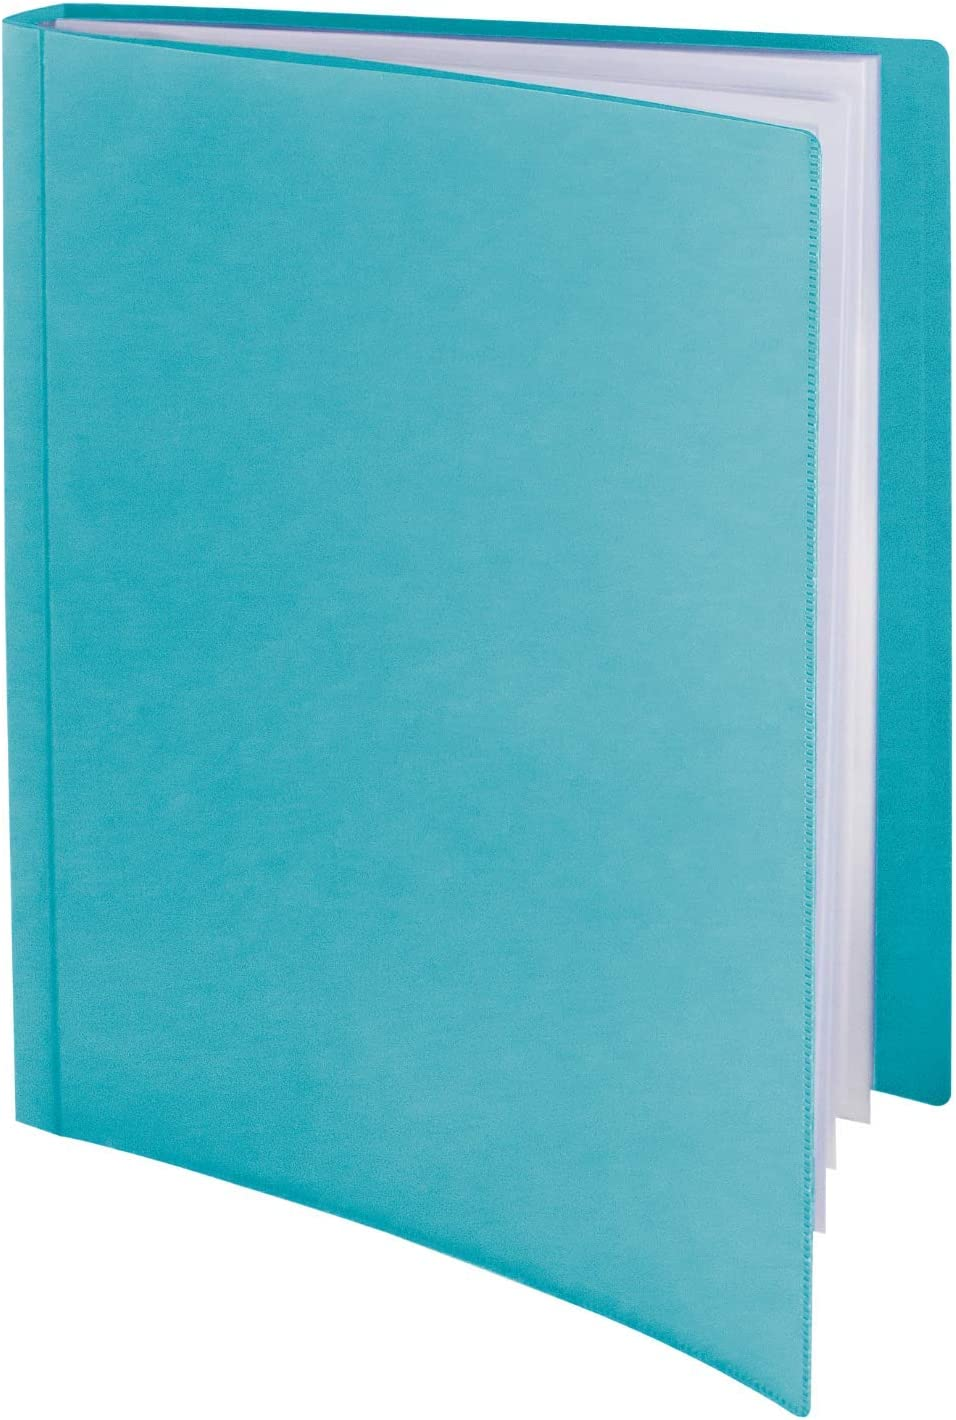 Dunwell Binder with Plastic Sleeves - (Aqua, 1 Pack), 24-Pocket Bound Presentation Book with Clear Sleeves, Sheet Protector Binder Displays 48 Pages of 8.5x11 Letter Size Documents, Sheet Music, etc.